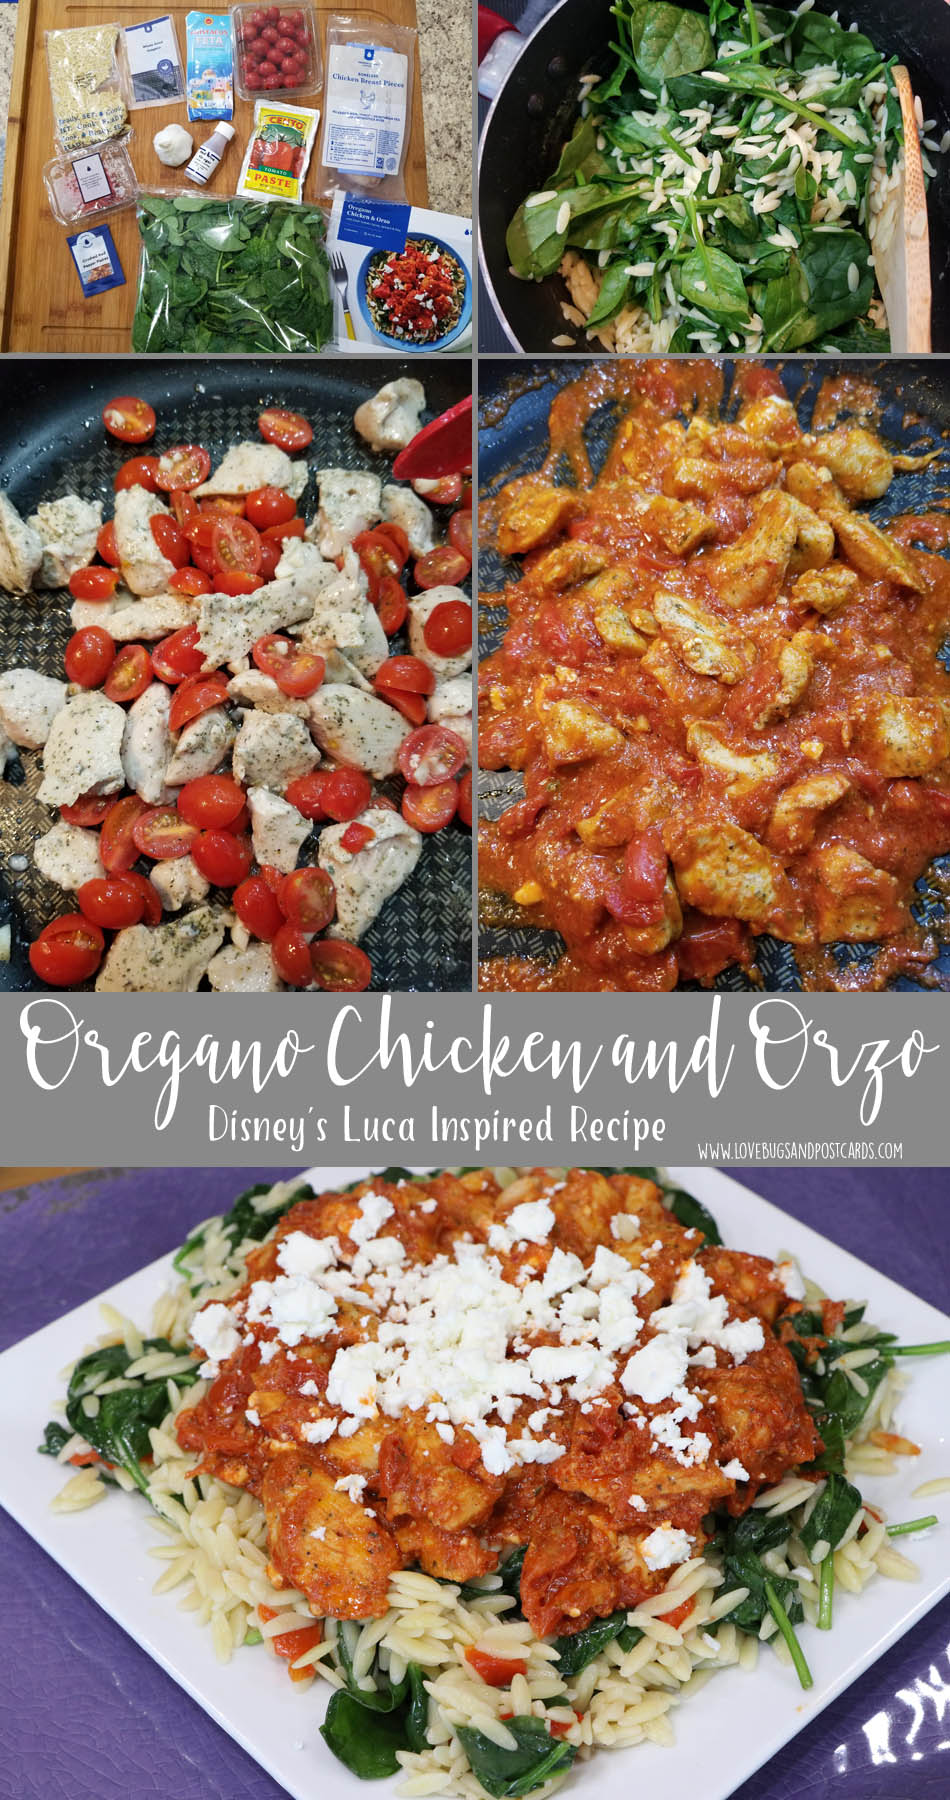 Get inspired by these Disney's Luca Recipes  - Oregano Chicken and Orzo